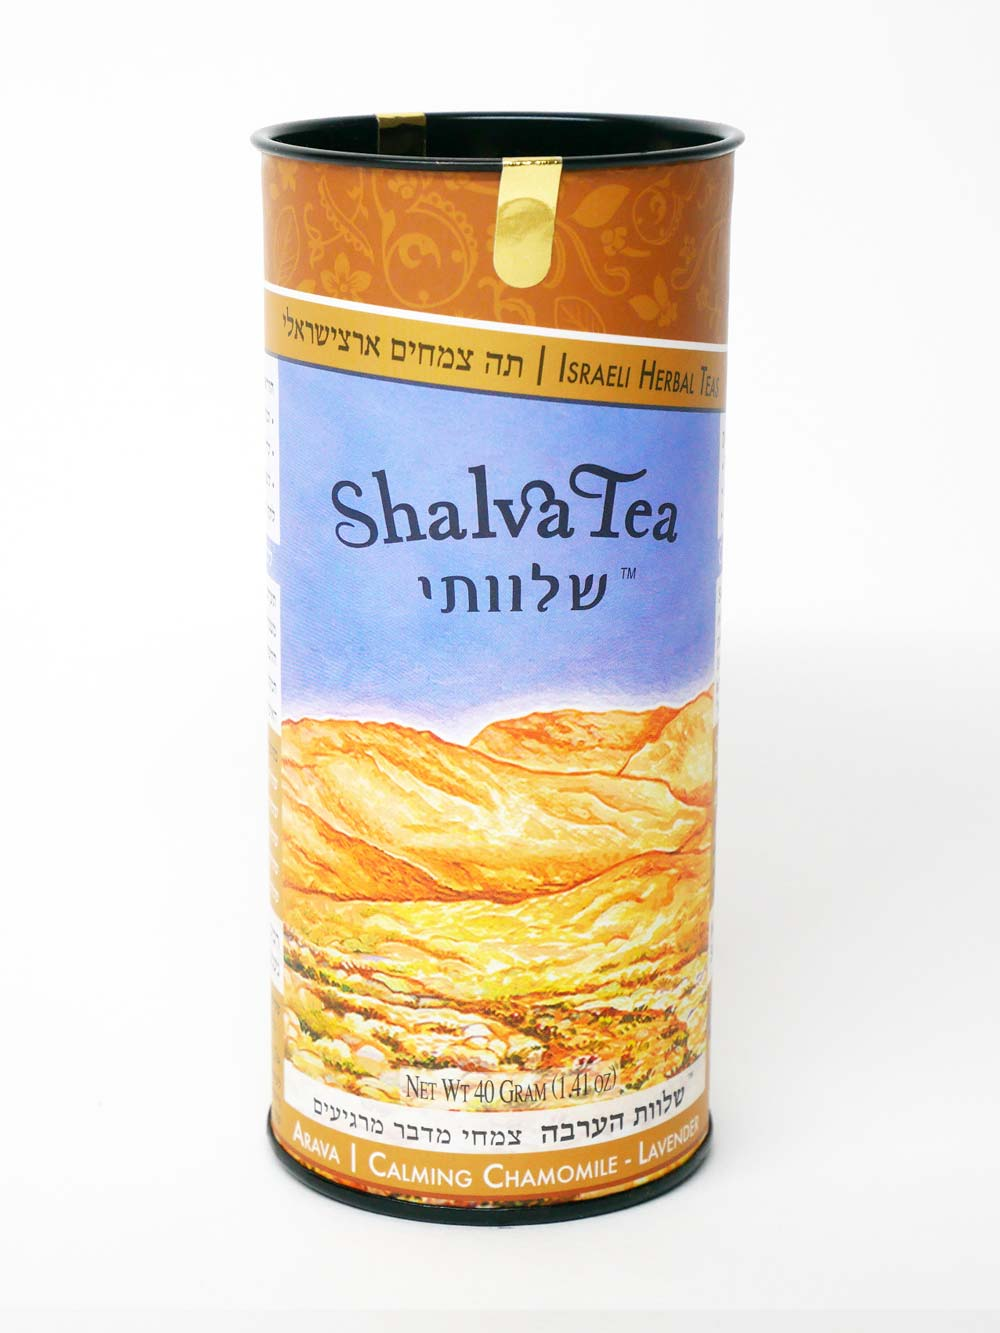 Calming Chamomile-Lavender | Arava Blend (20 Teabags) - ShalvaTea Kosher Israeli Herbal Teas